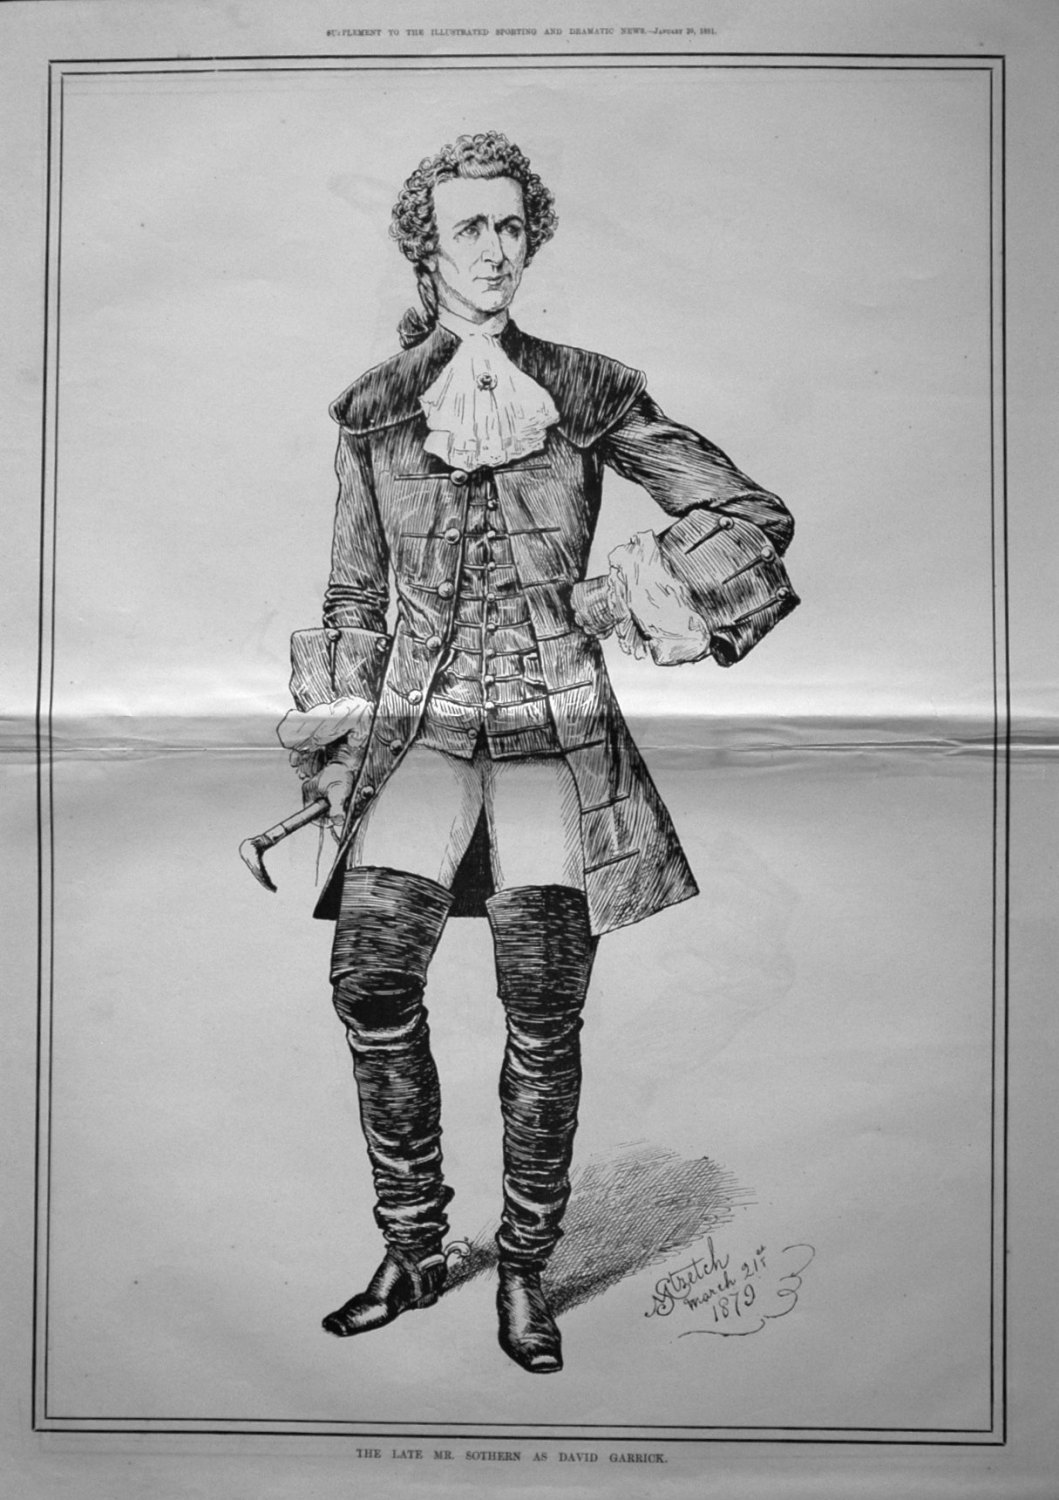 The Late Mr. Sothern as David Garrick. 1881